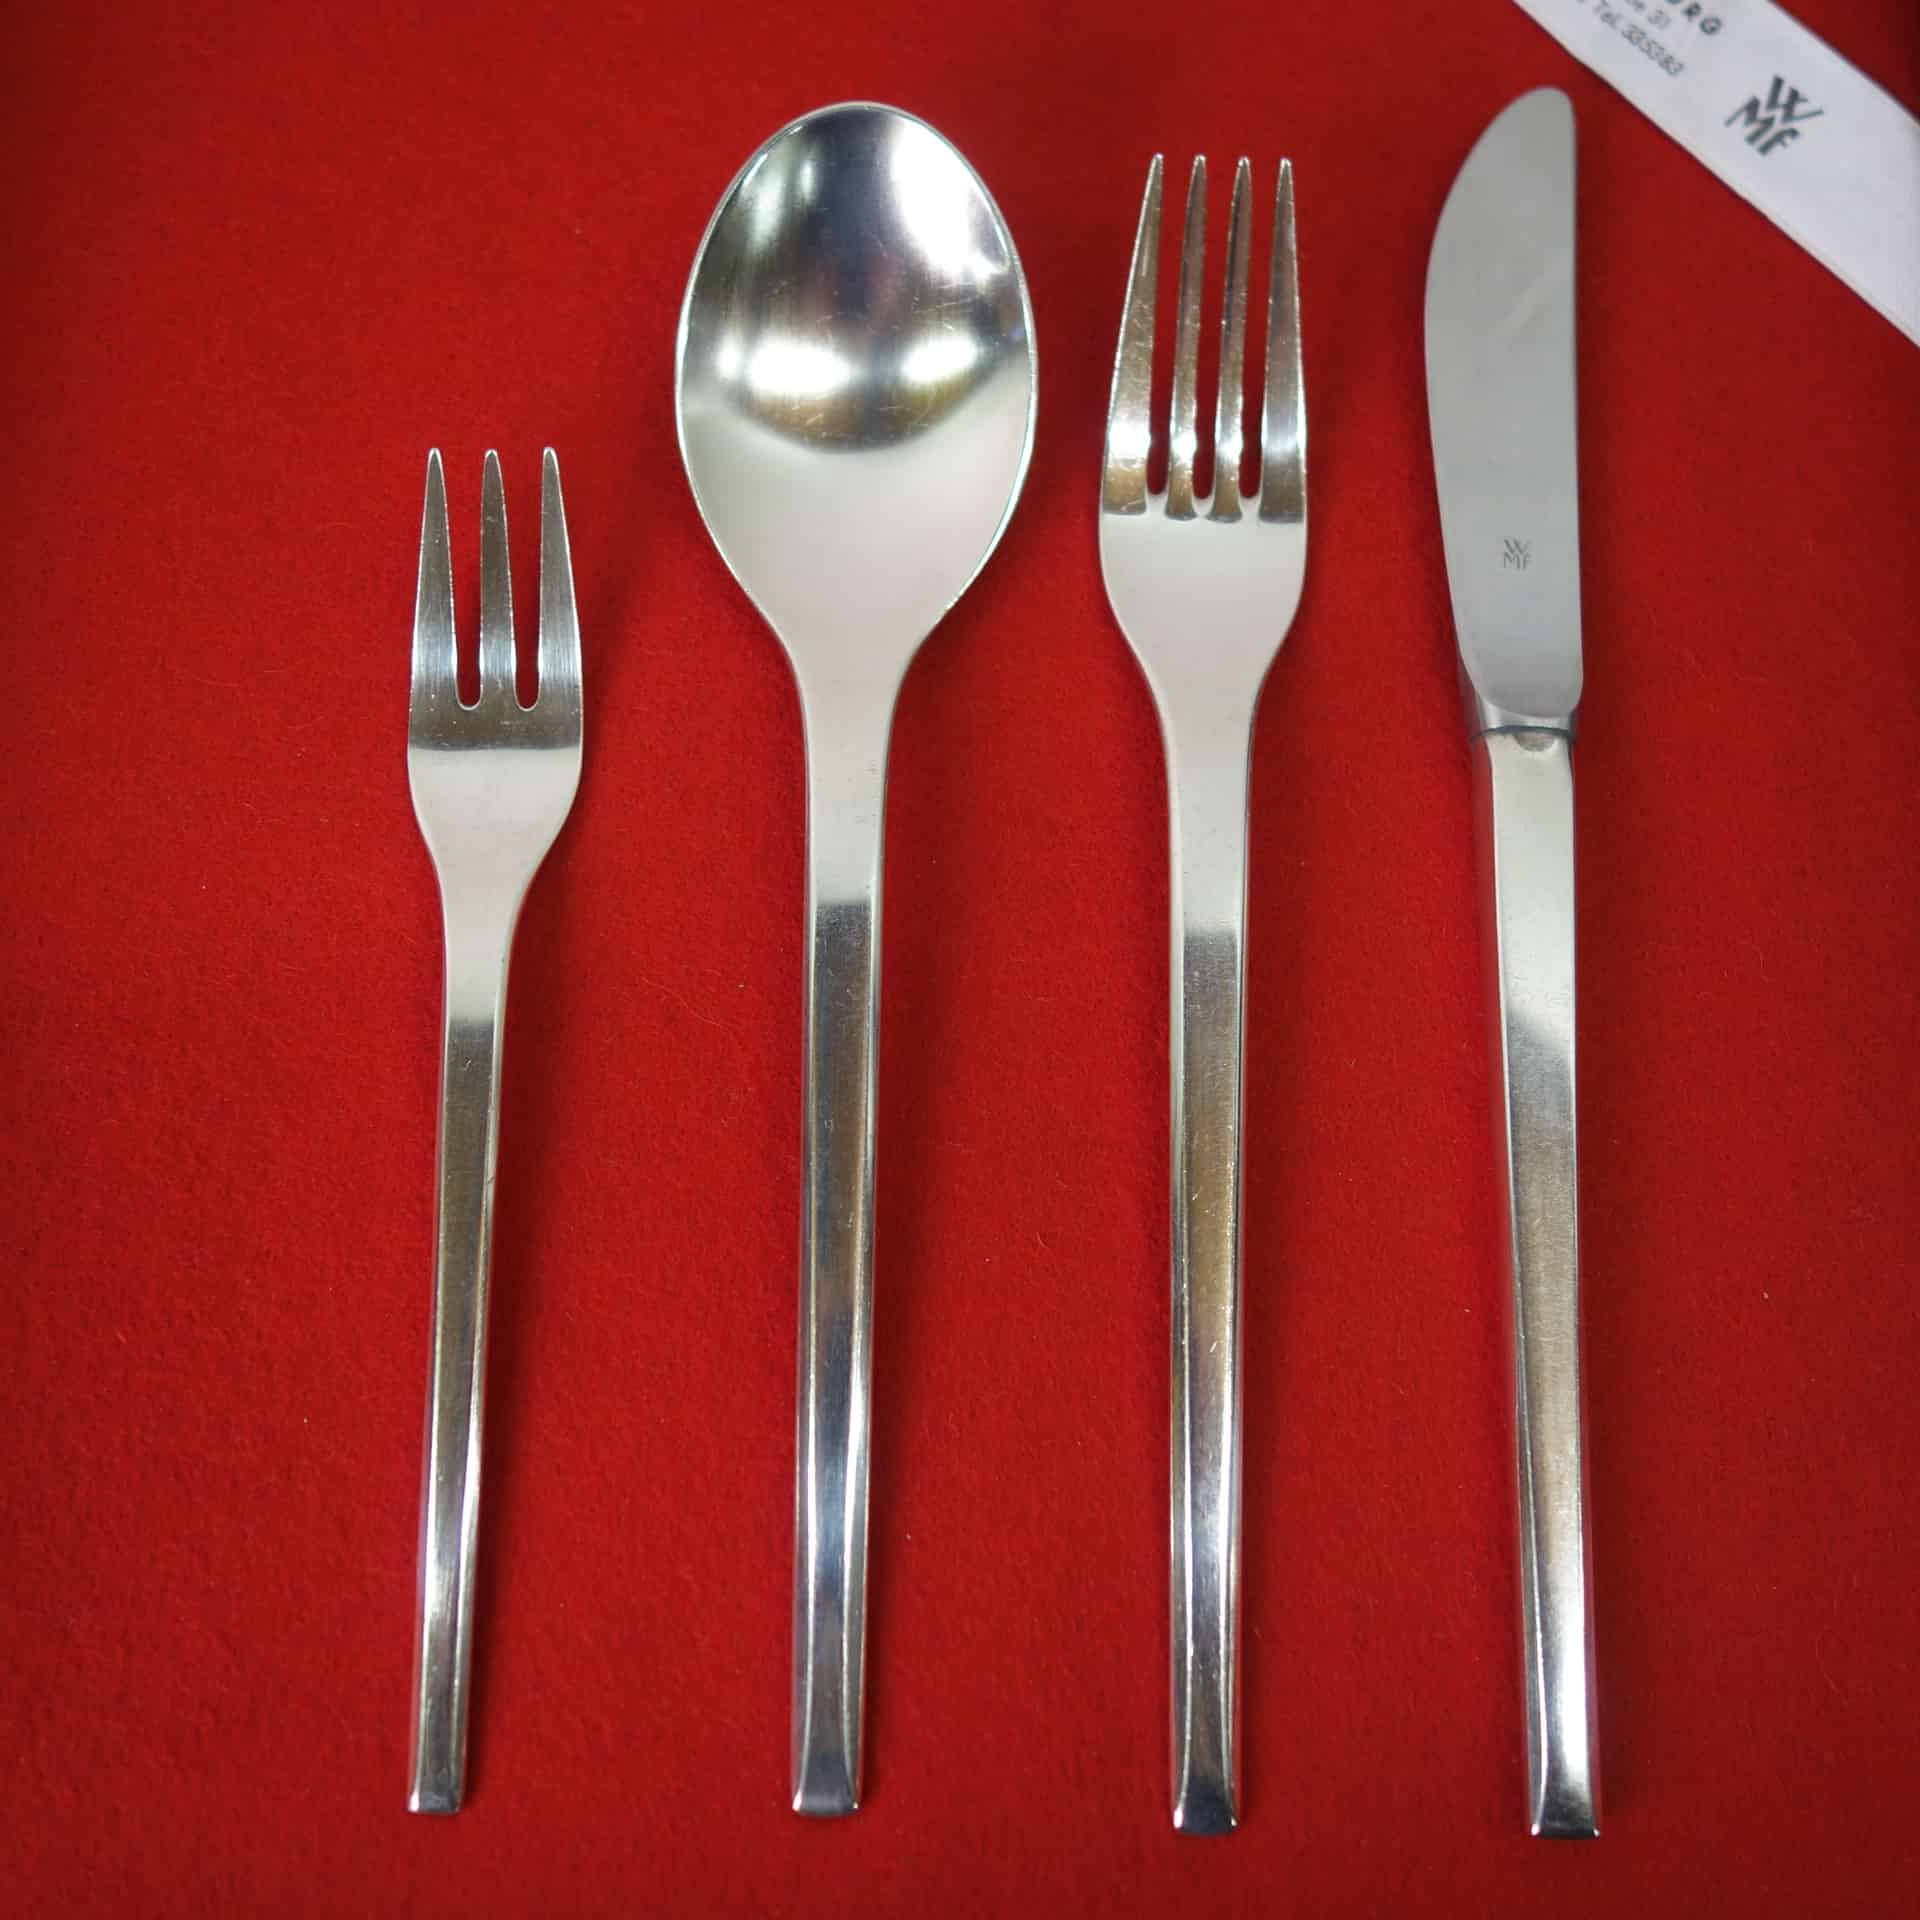 set of modernist cutlery by wmf germany mark parrish mid century modern. Black Bedroom Furniture Sets. Home Design Ideas